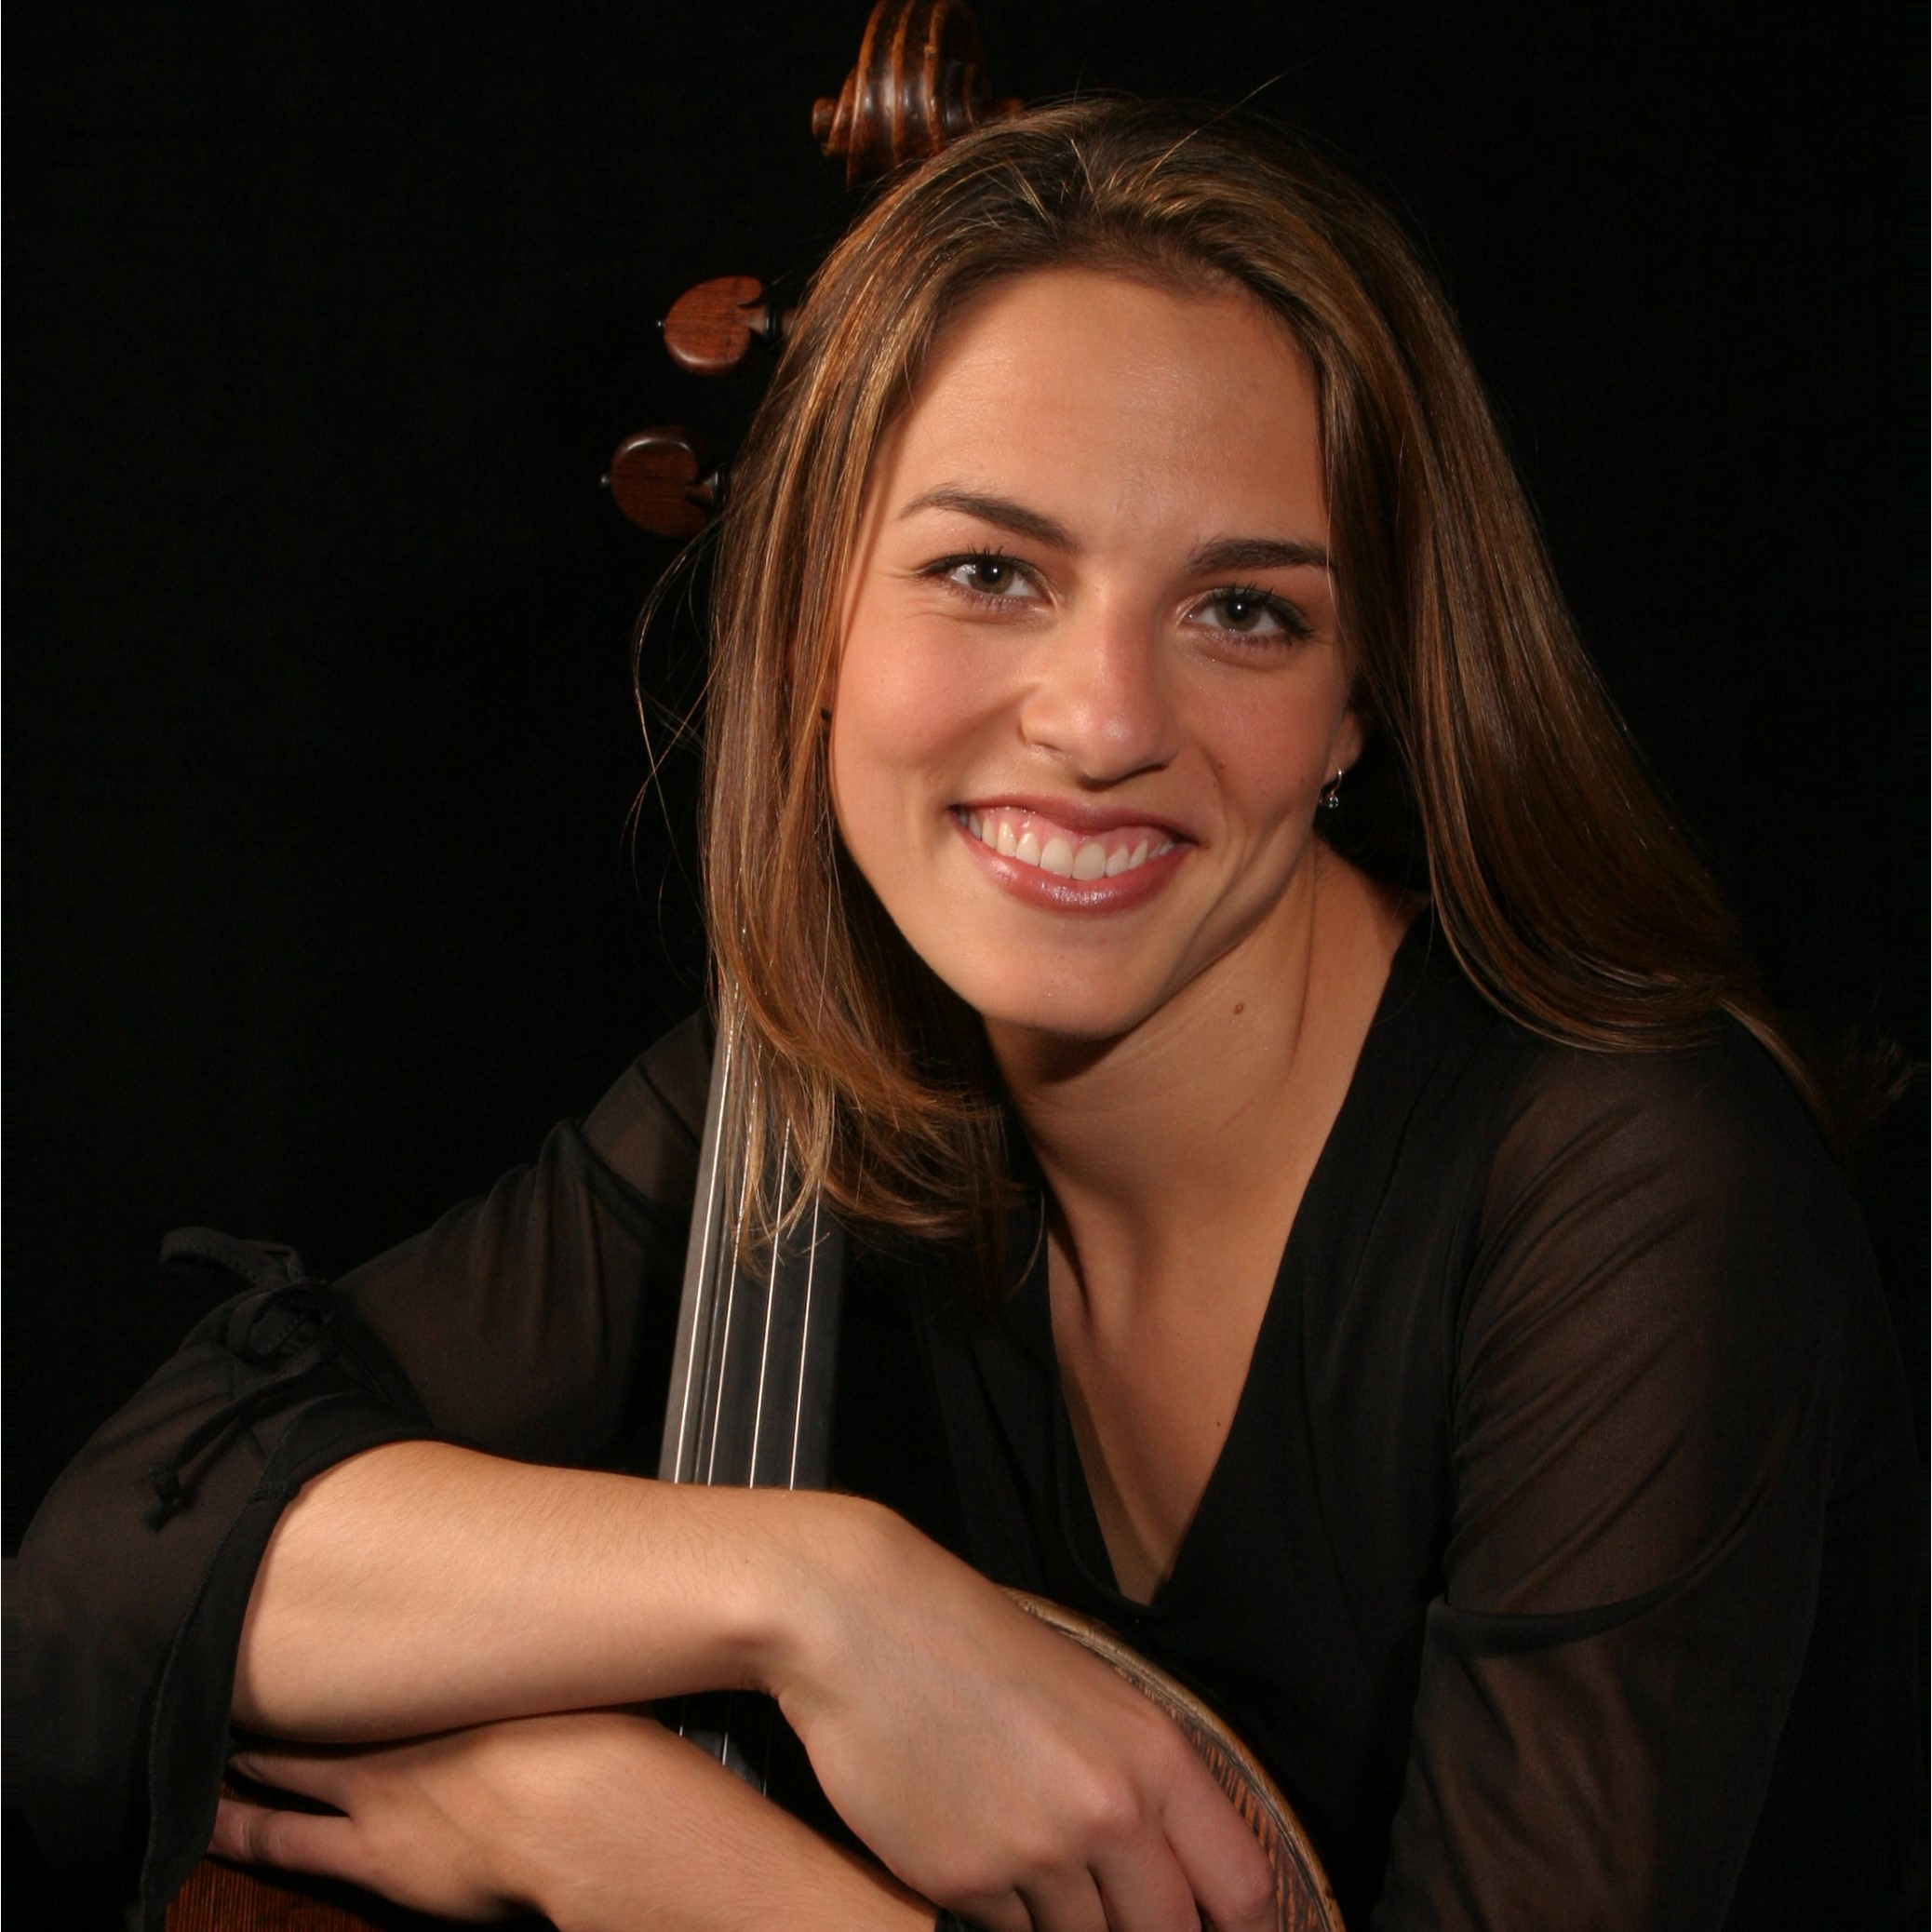 https://www.seattlechambermusic.org/wp-content/uploads/julieAlbers7.jpg